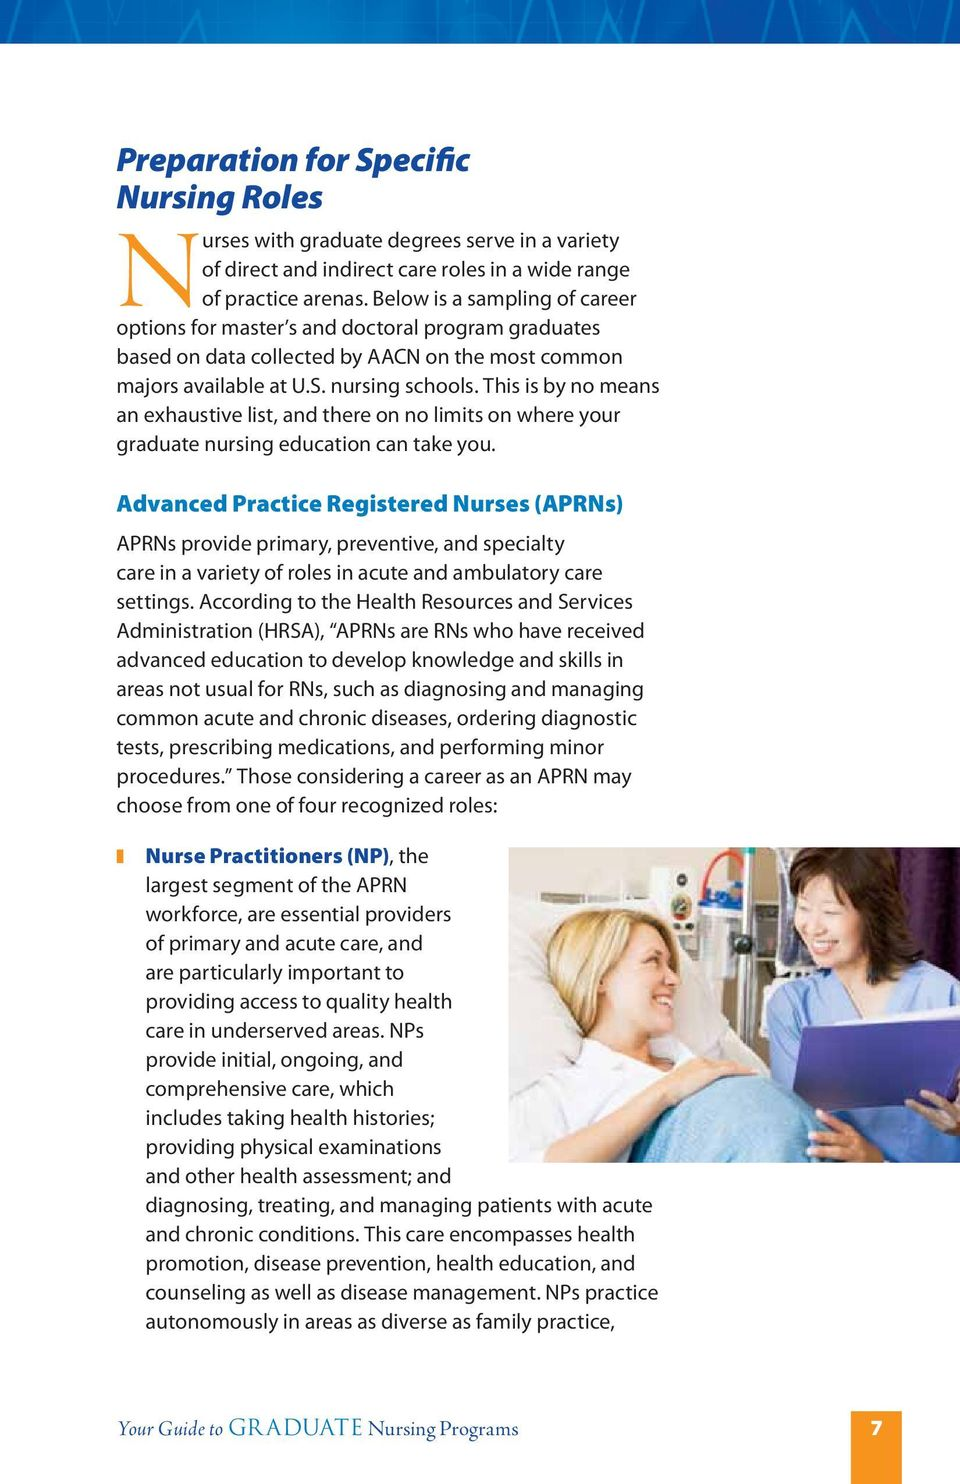 This is by no means an exhaustive list, and there on no limits on where your graduate nursing education can take you.